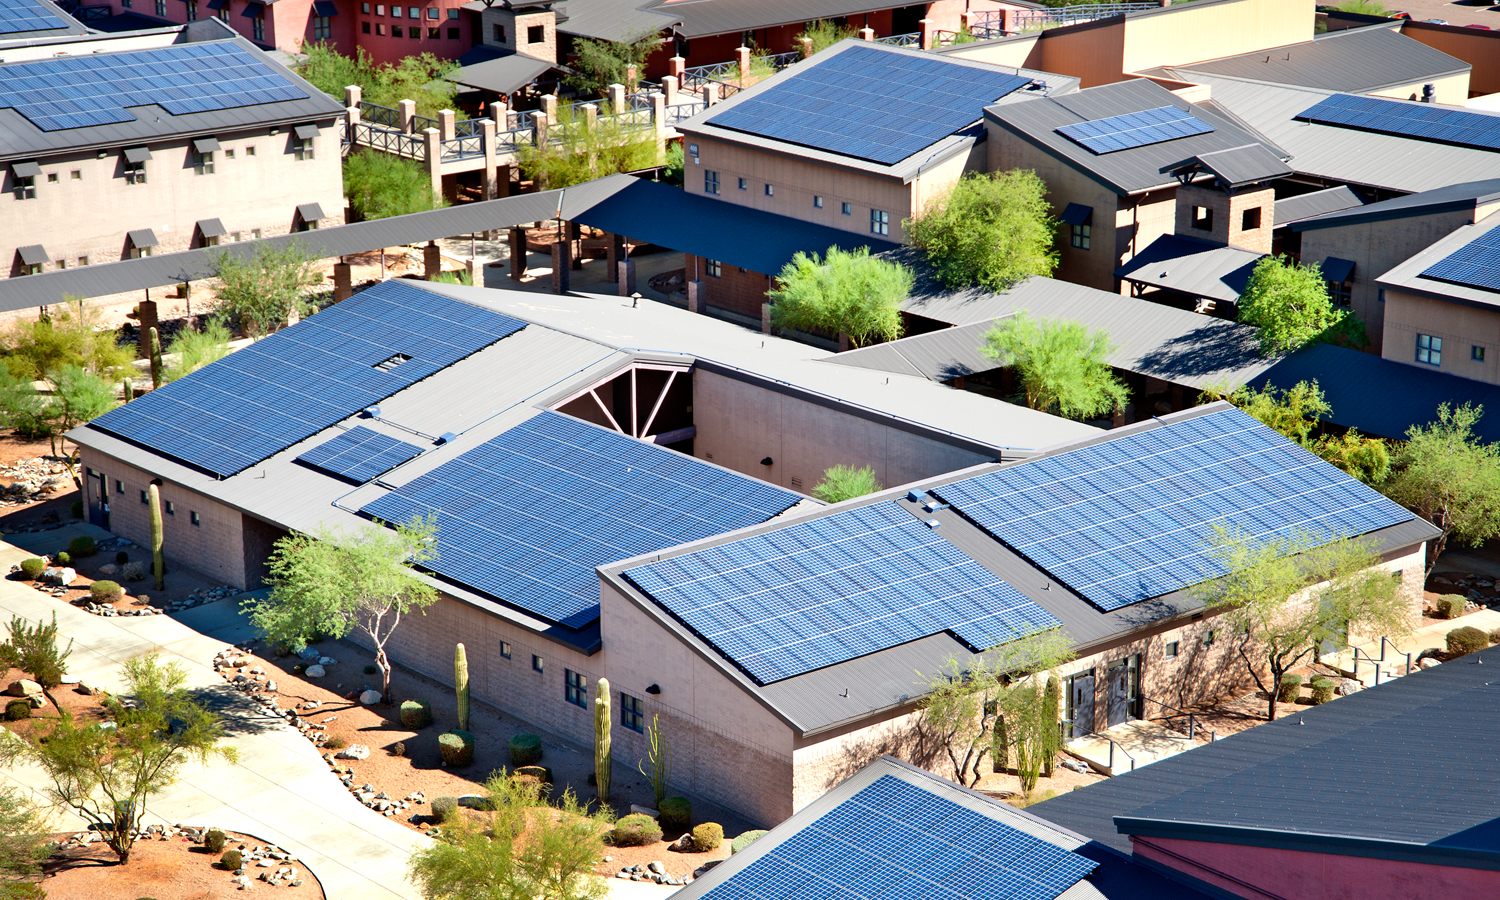 To Reduce The Cost Of Solar Look To Everything But The